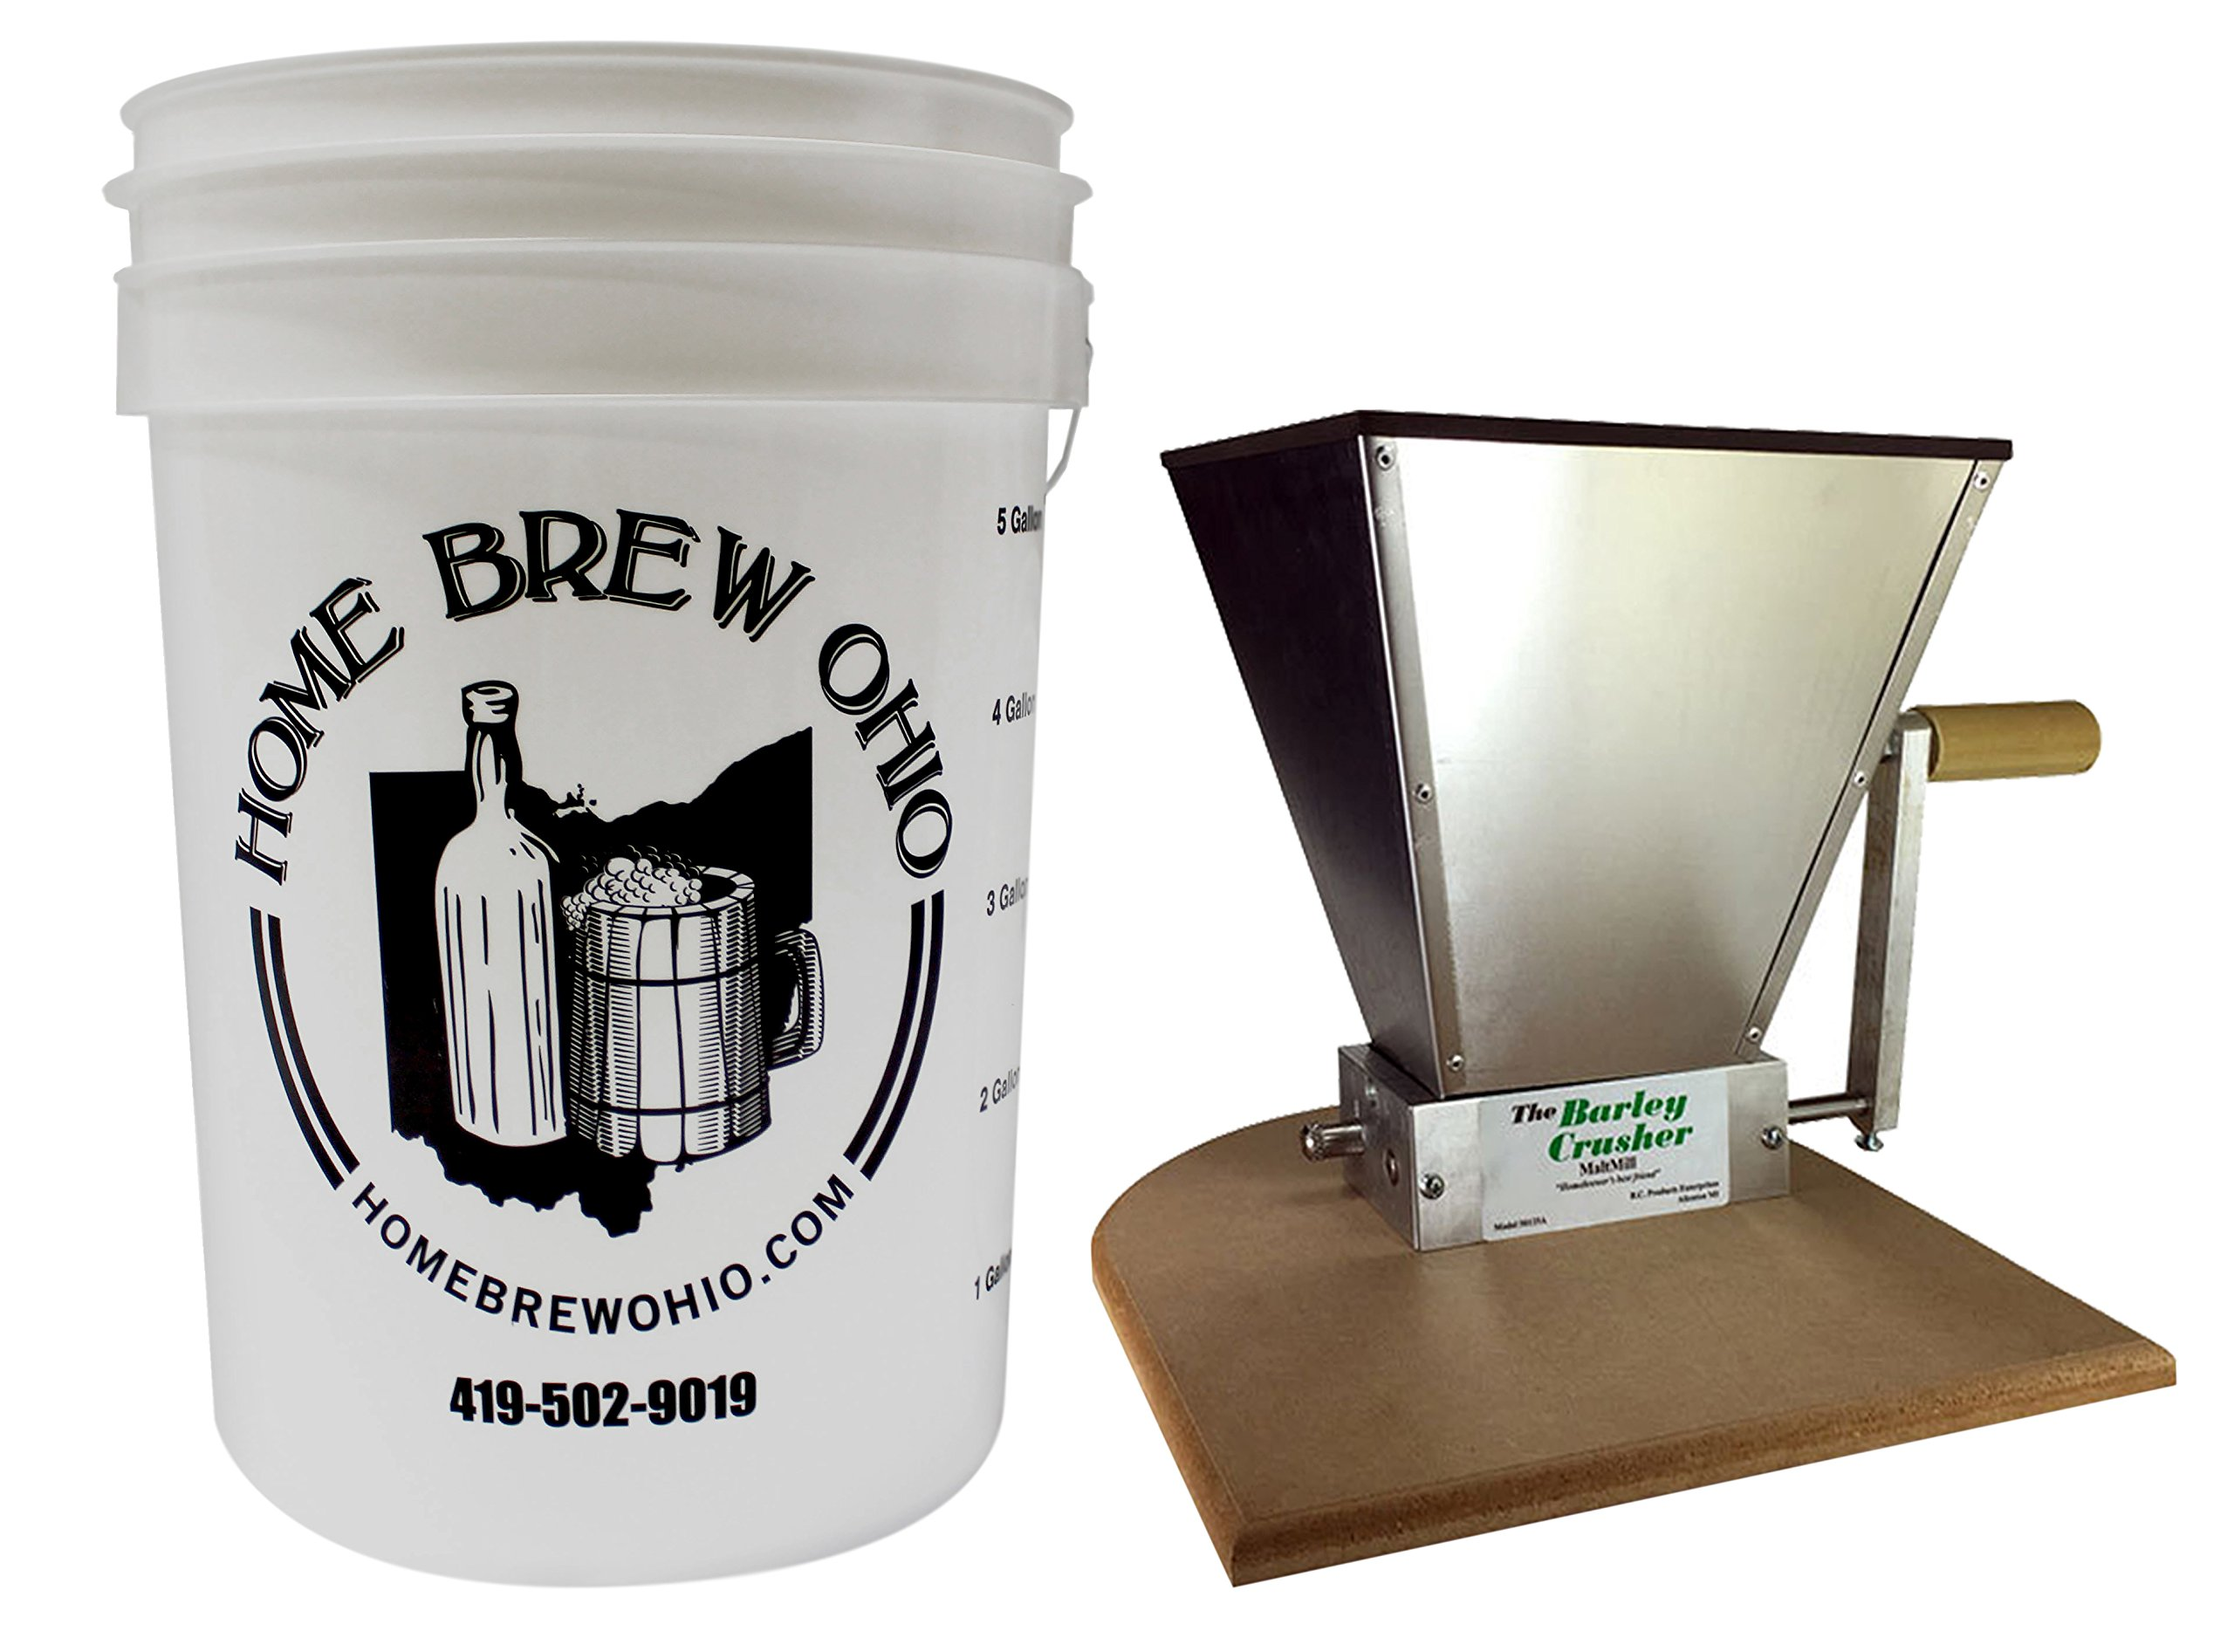 Home Brew Ohio Barley Crusher 7 lb. Hopper Including Bucket by Home Brew Ohio